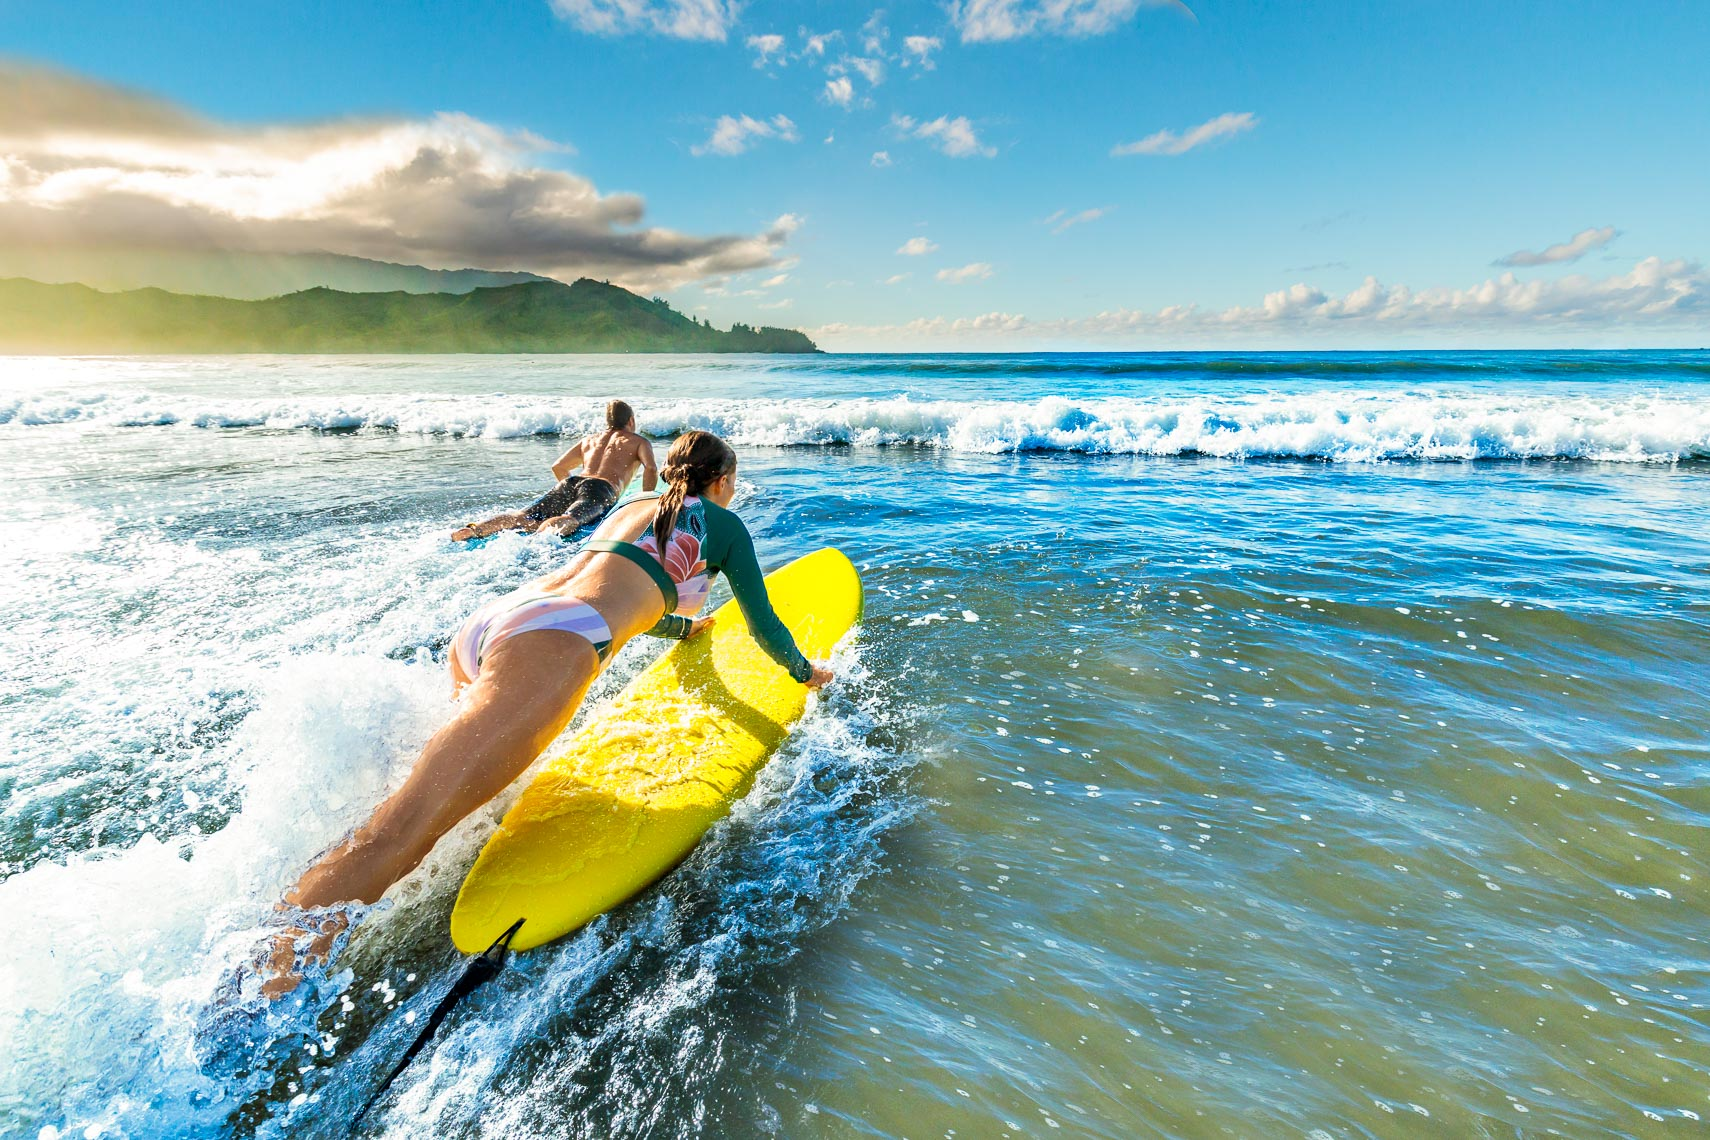 Norwegian Cruise Line Hawaii Couple Go Surfing | Michael DeYoung